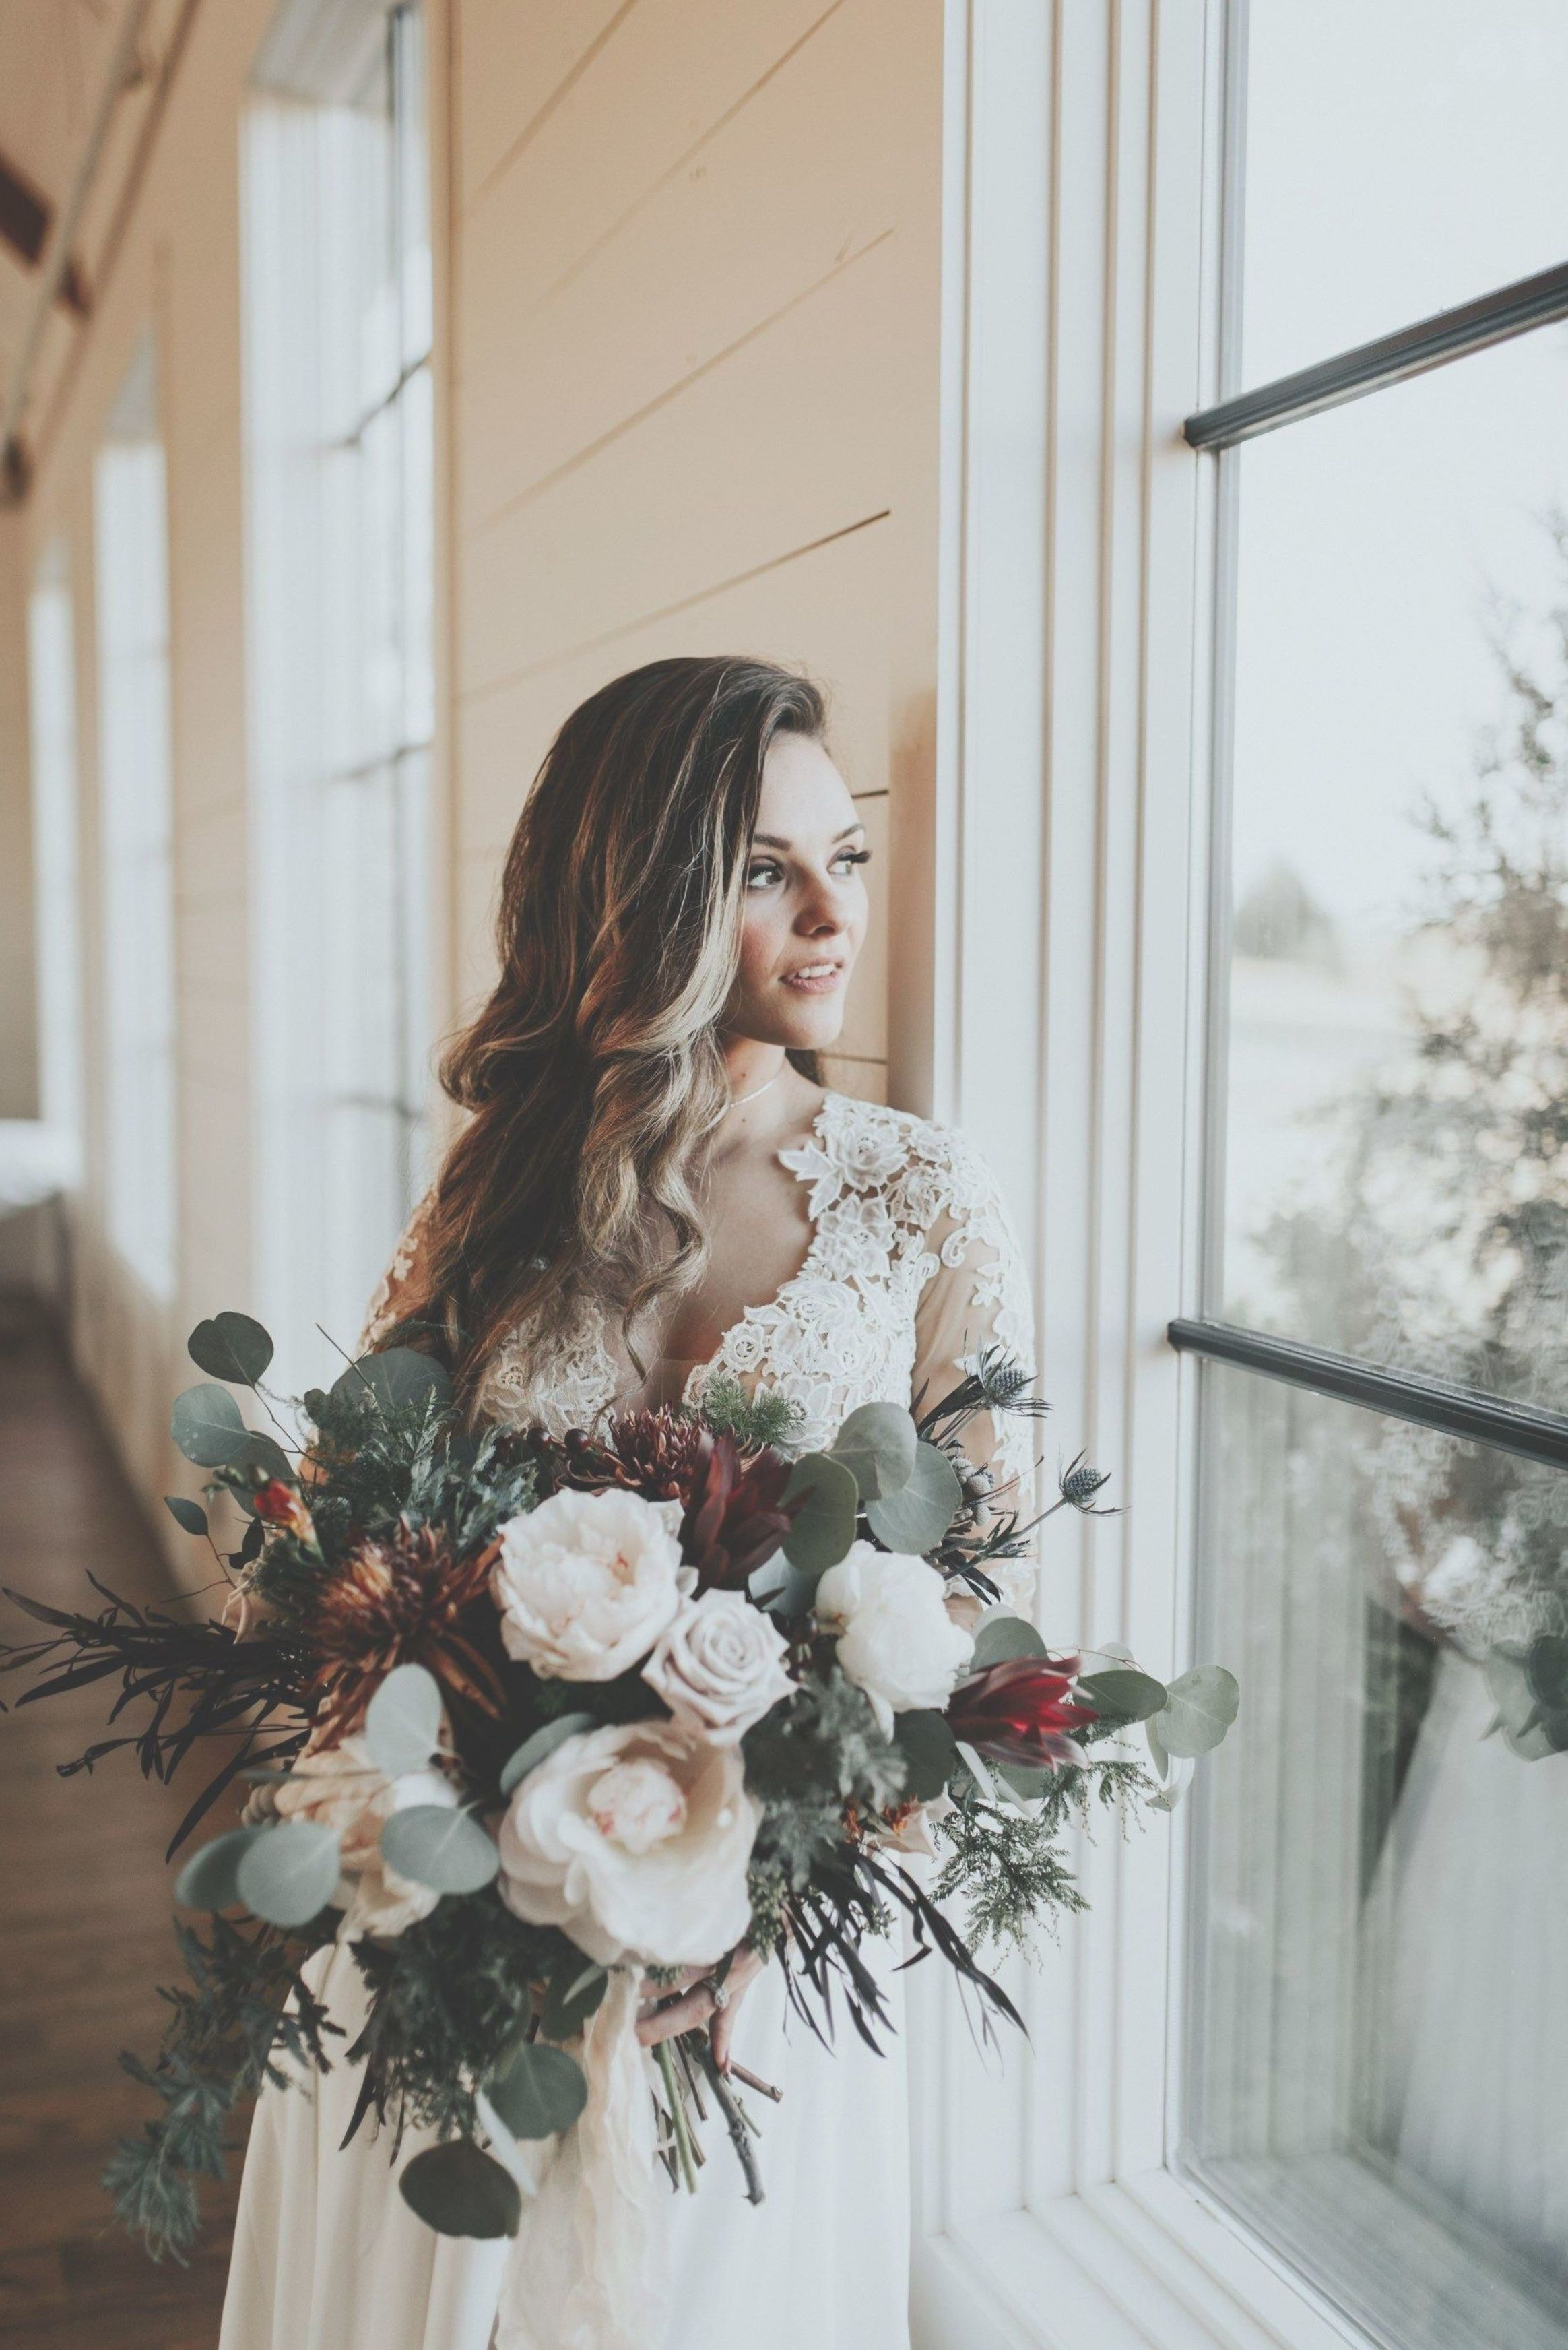 Styled shoot at Southwind Hill's Chapel | This styled shoot was beyond fun to put together with my good friend & fellow photographer Chelsea Bollinger | Romantic modern chapel wedding Inspo, wedding day details, wedding day inspiration, bride and groom wedding day portraits | Peyton Rainey Photography #wedding #togetherwithfriends